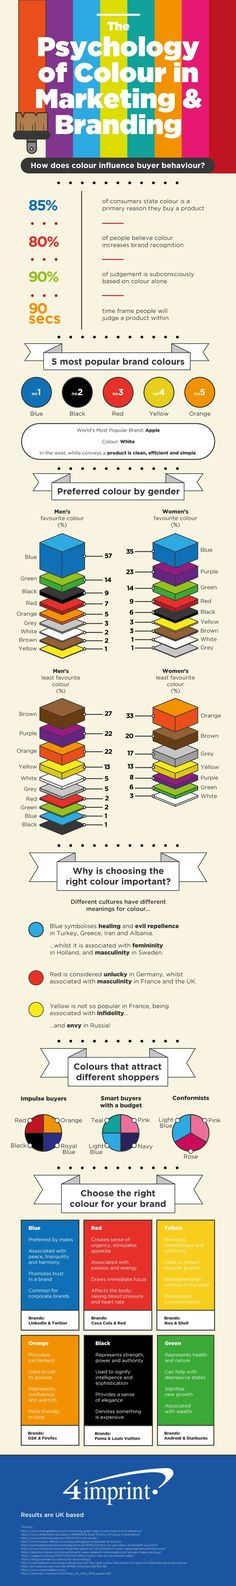 How Your Brain Reacts to Colors: A Retail Packaging Guide https://www.repsly.com/blog/how-your-brain-reacts-to-colors-a-retail-sales-packaging-guide